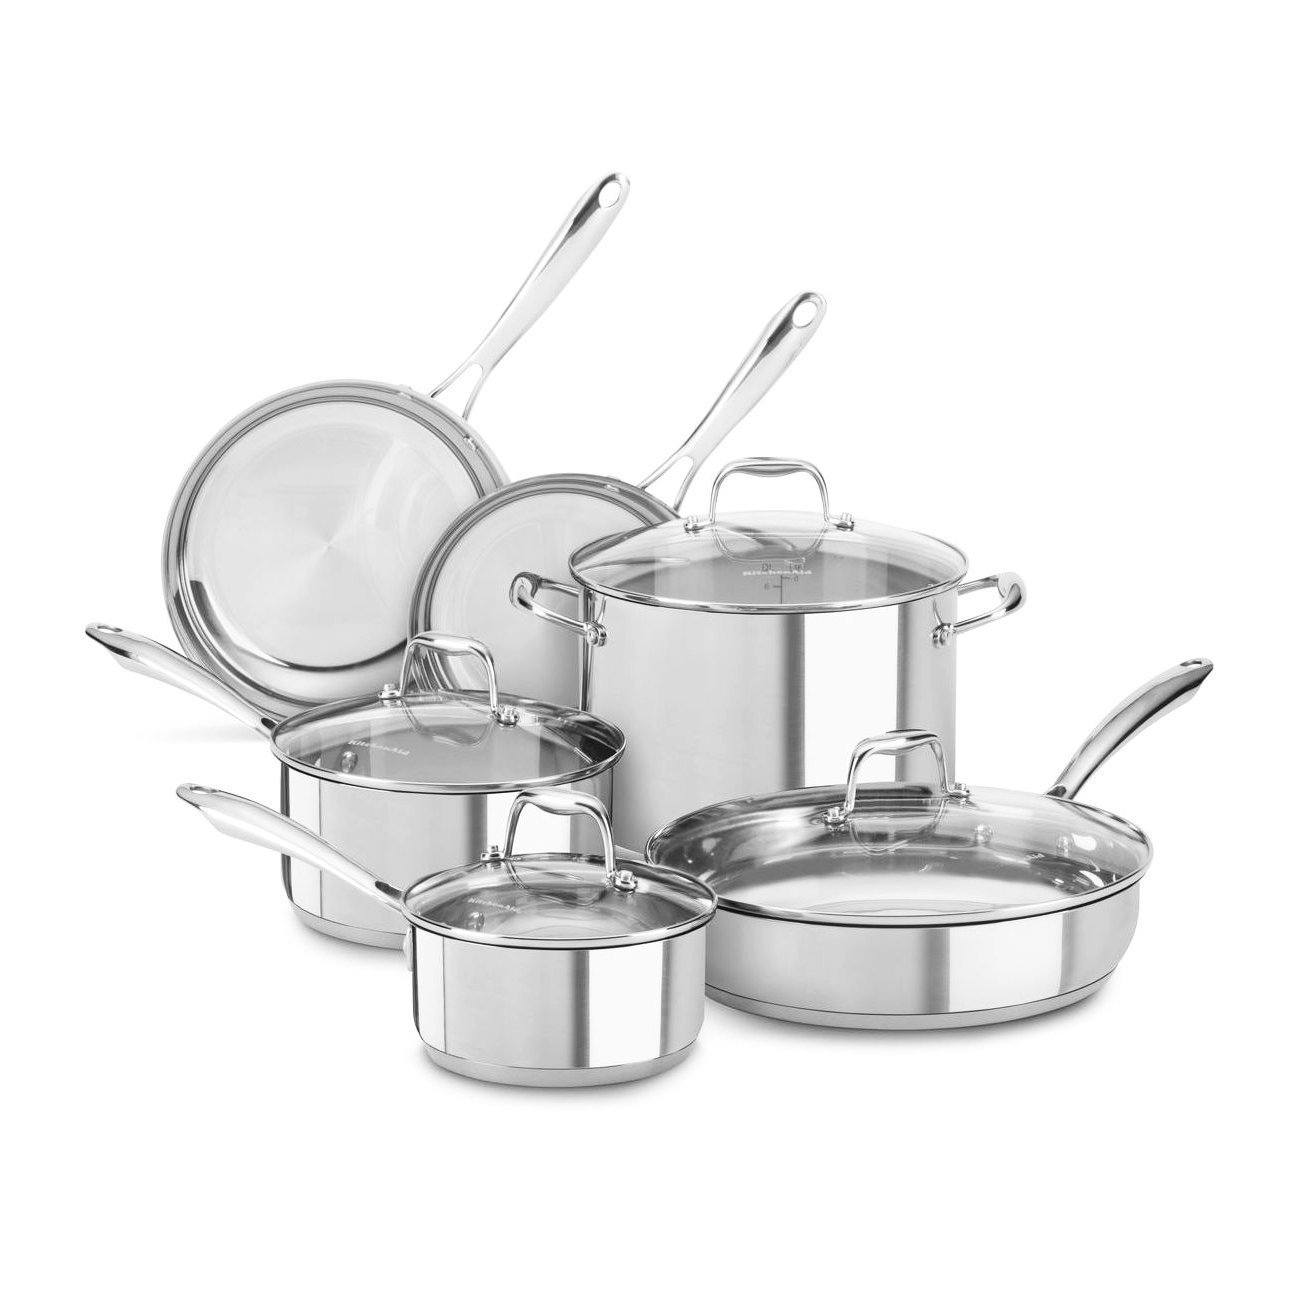 Kitchen Aid KCSS10LS Stainless Steel 10-Piece Cookware Set Review